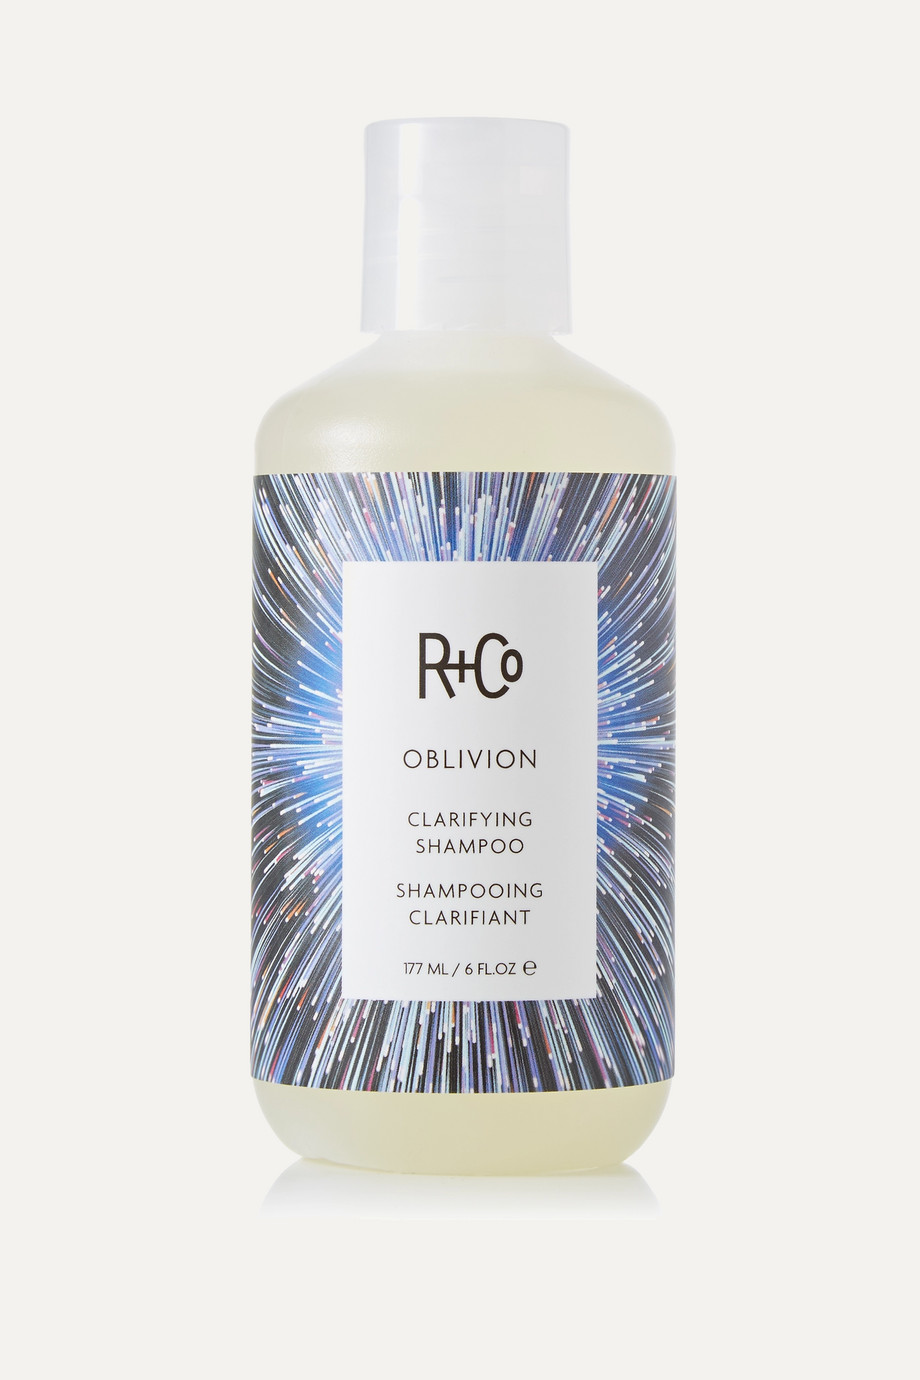 R+CO Oblivion Clarifying Shampoo, 177ml